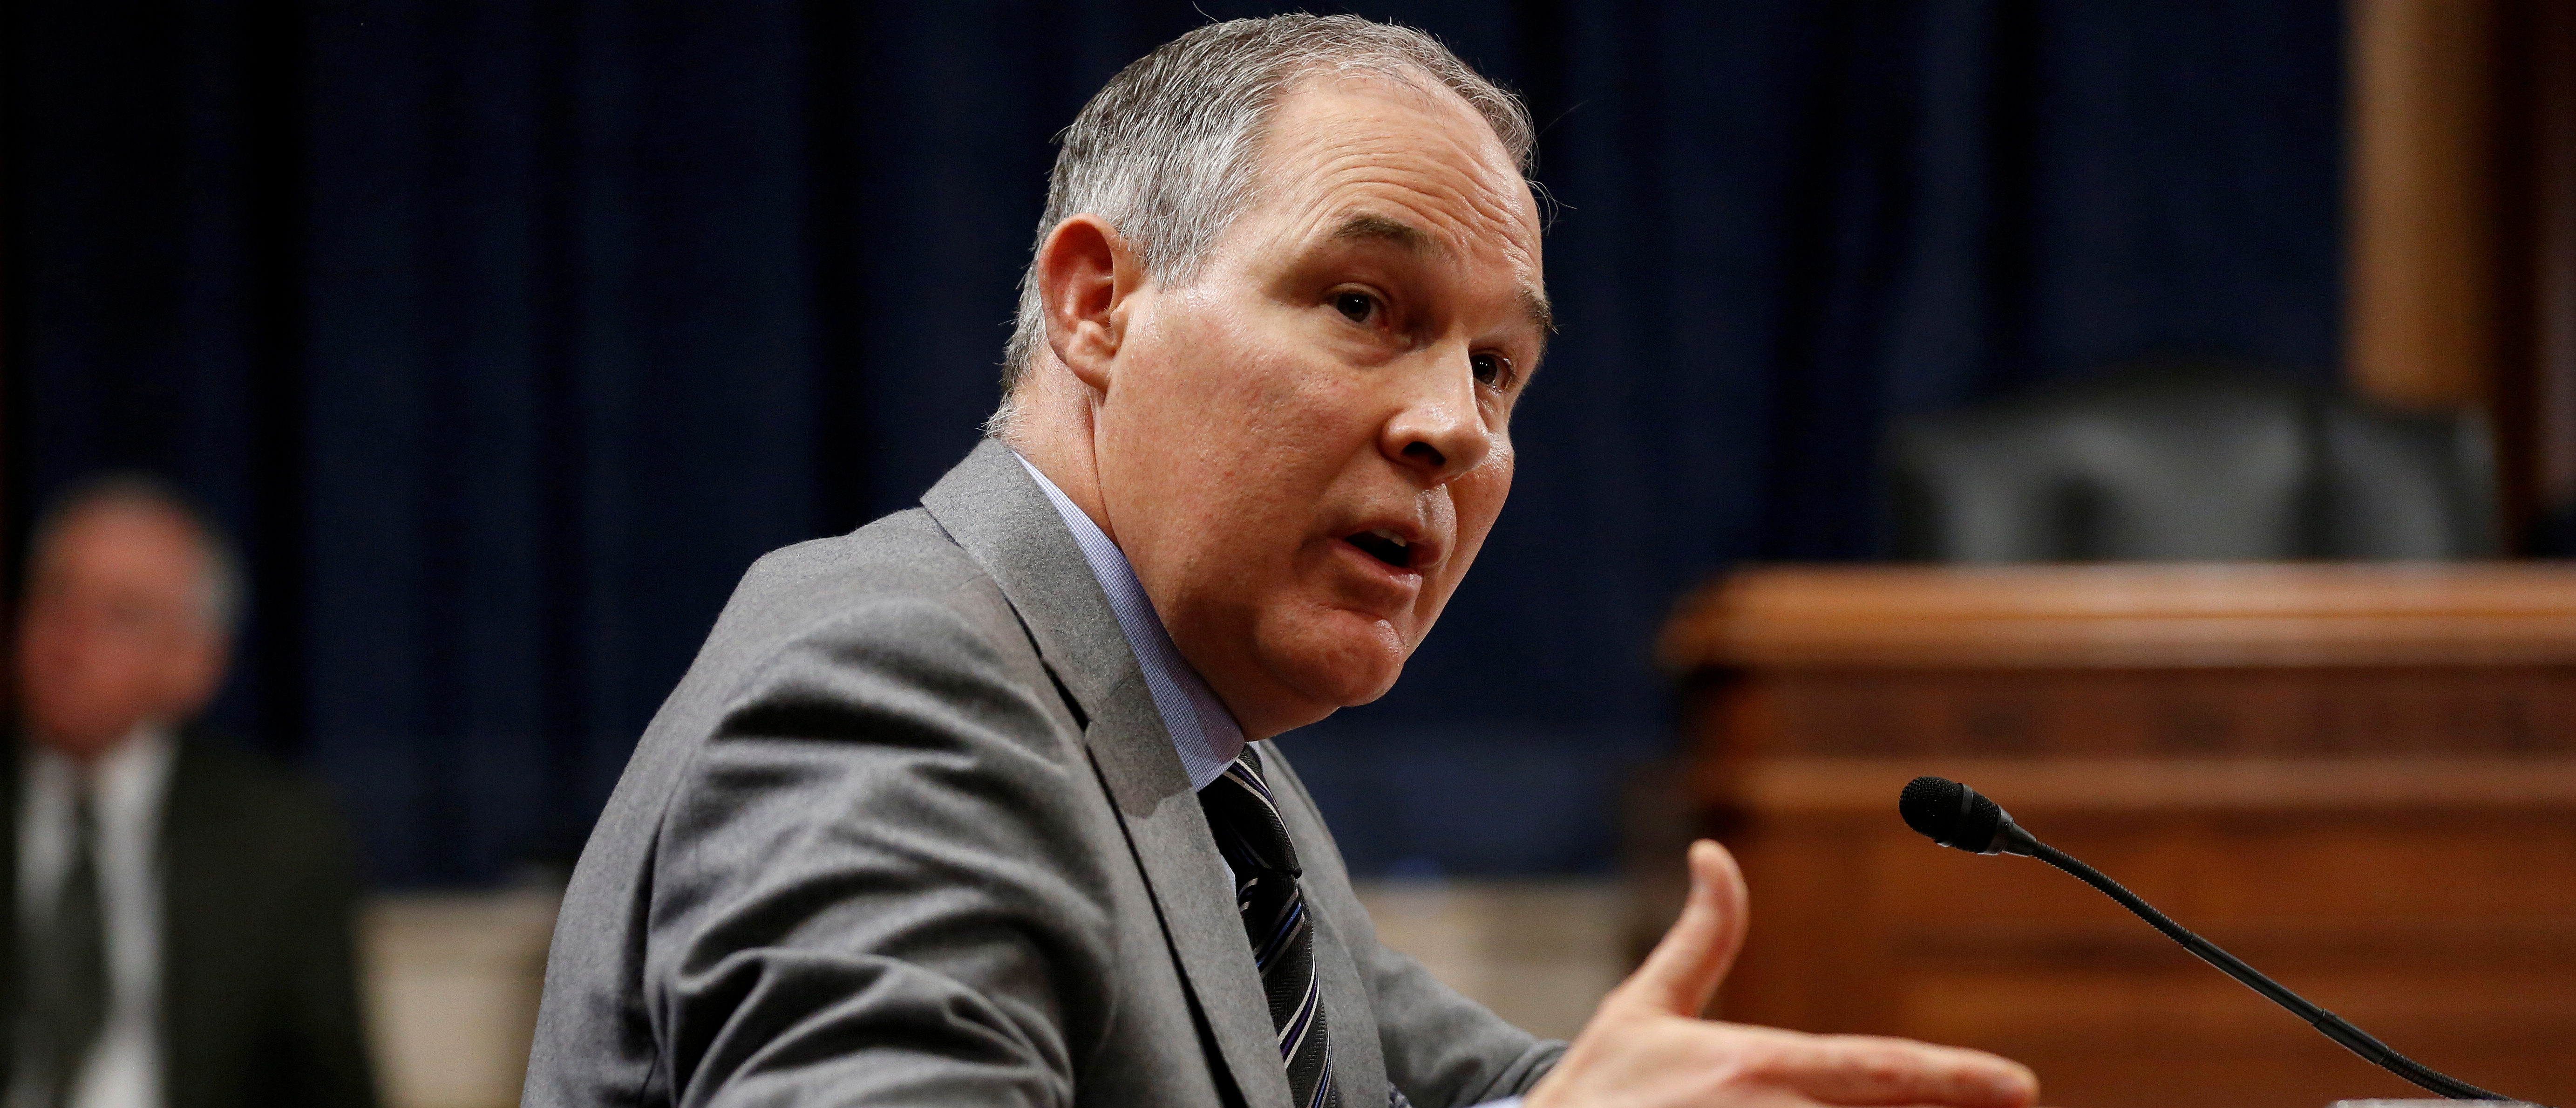 FILE PHOTO: Scott Pruitt, Environmental Protection Agency (EPA) Administrator, gestures as he testifies to the Senate Environment and Public Works Committee oversight hearing on the Environmental Protection Agency on Capitol Hill in Washington, DC, U.S., January 30, 2018. REUTERS/Joshua Roberts/File Photo | Who Is Leaking Info On Scott Pruitt?